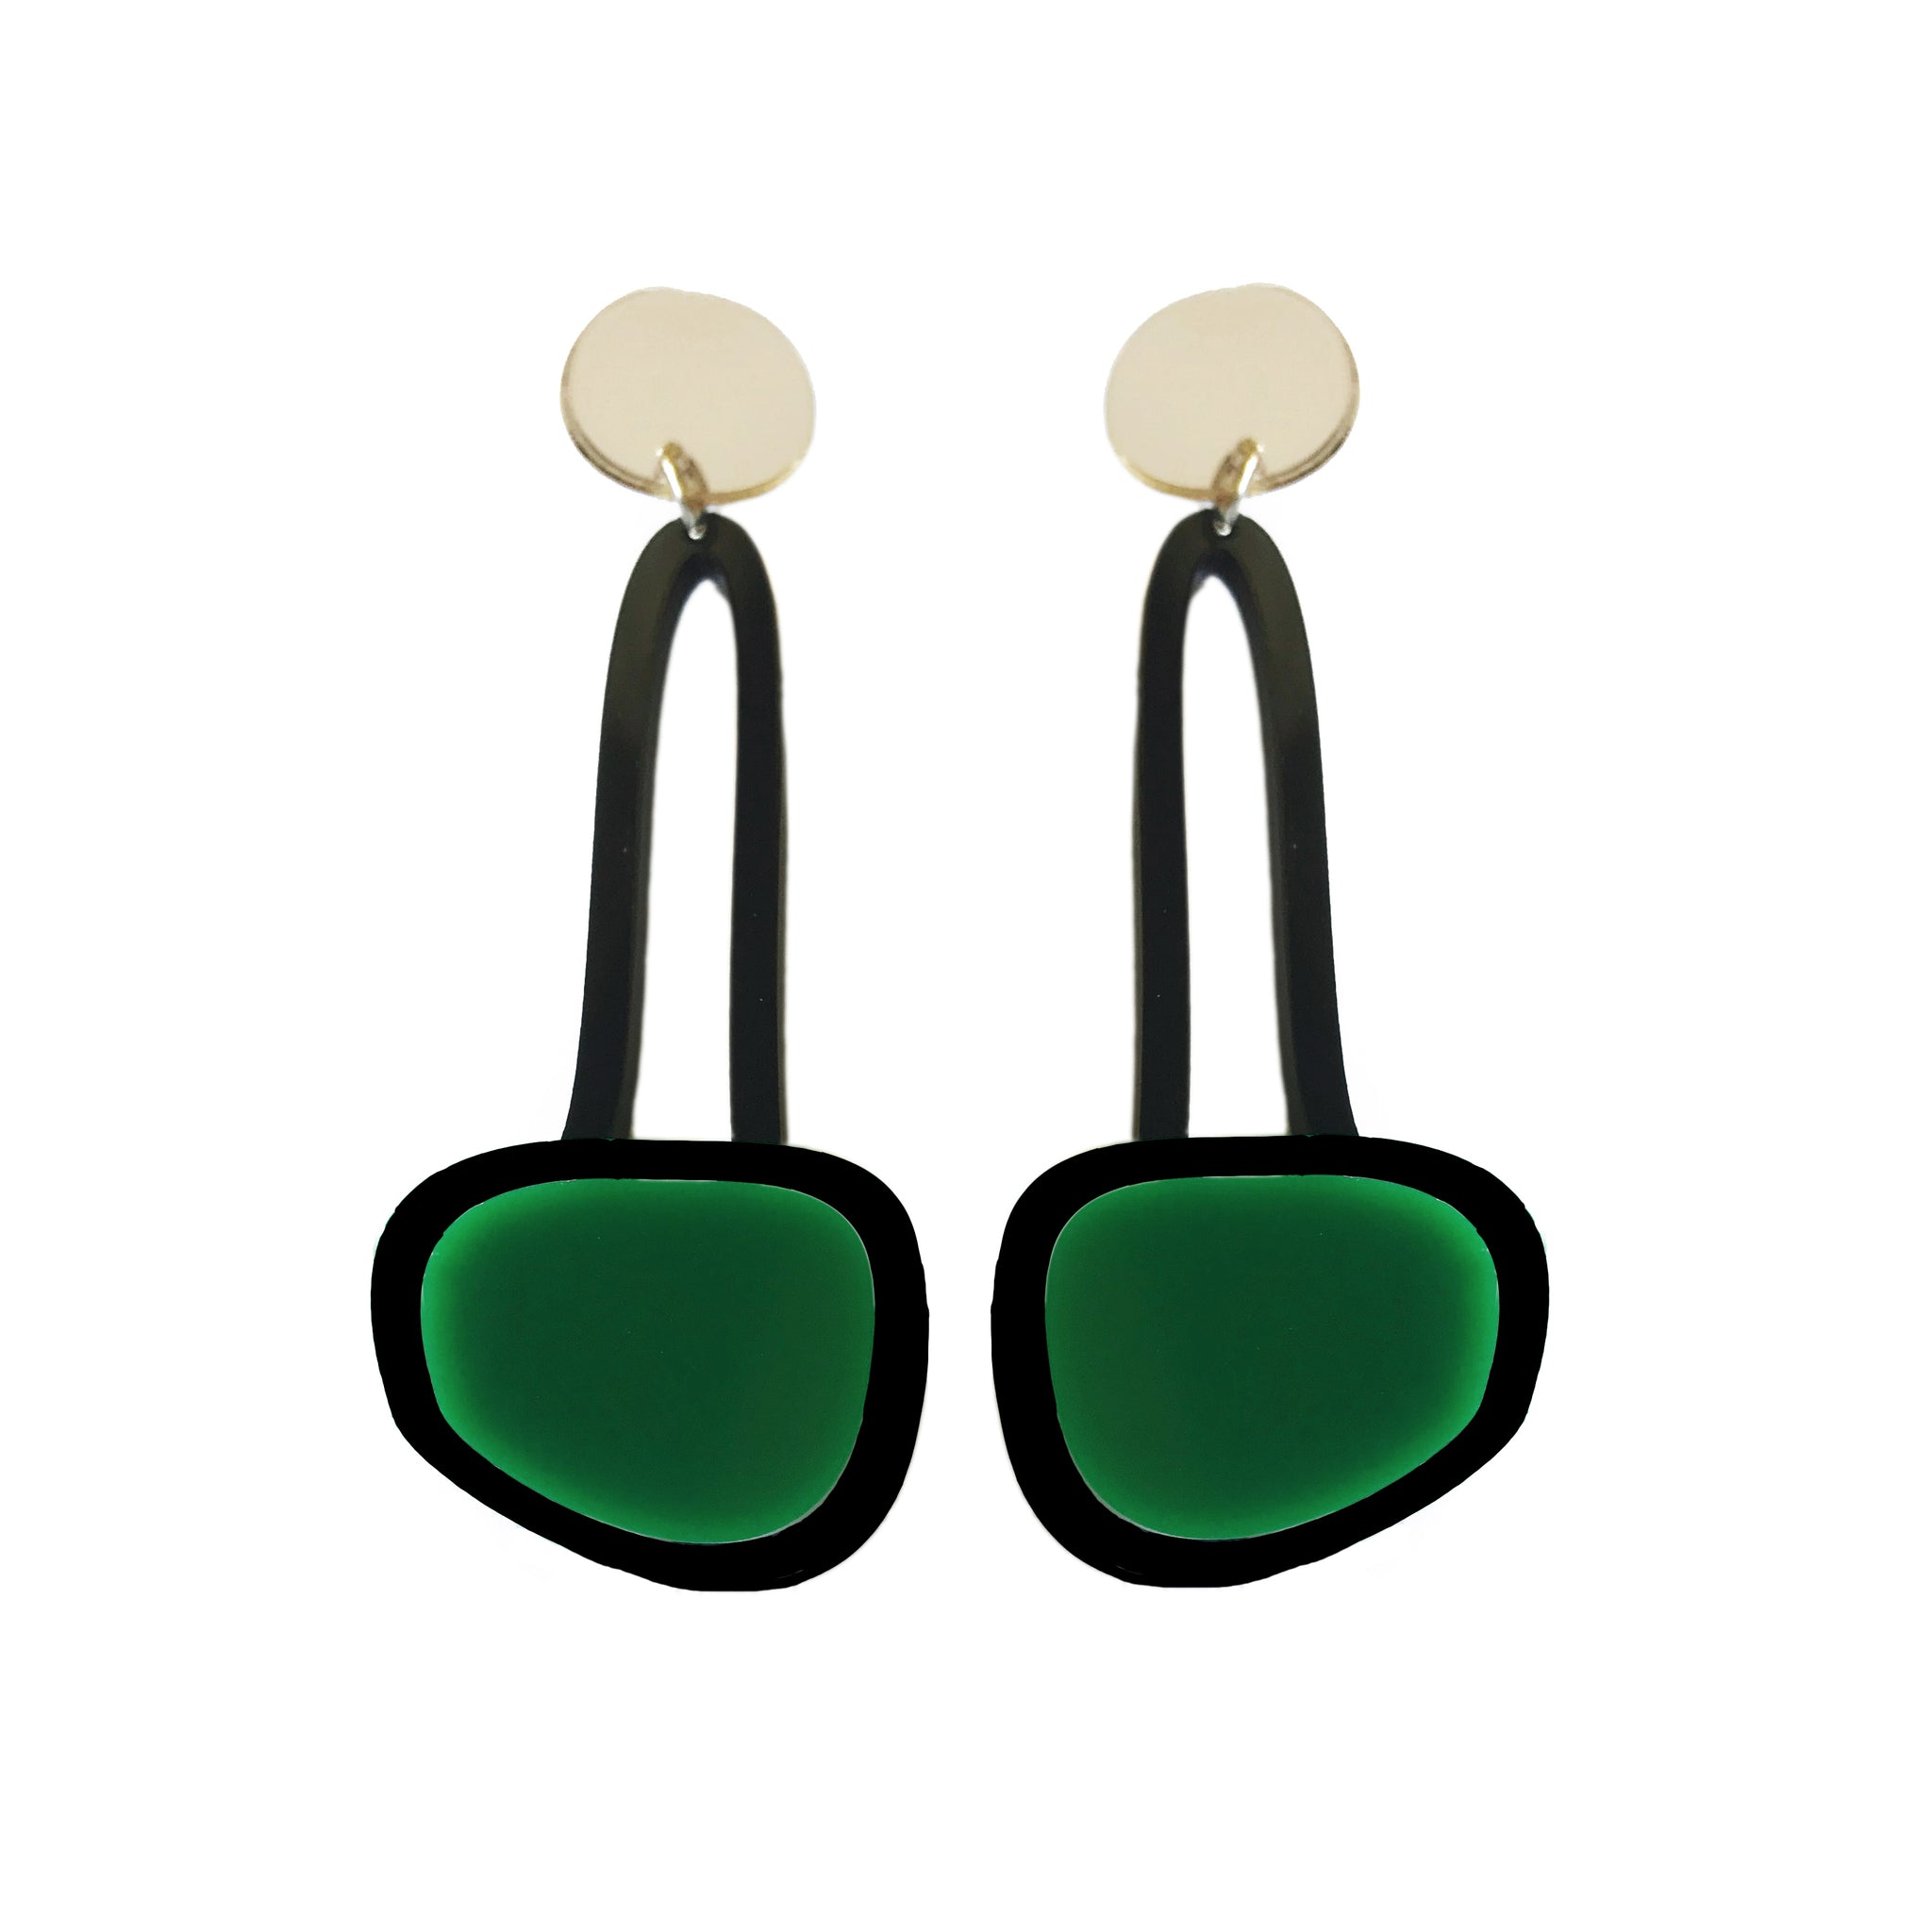 Hanging Drop Earrings Dark Green - Mikmat Designs Earrings Laser Cut Designs